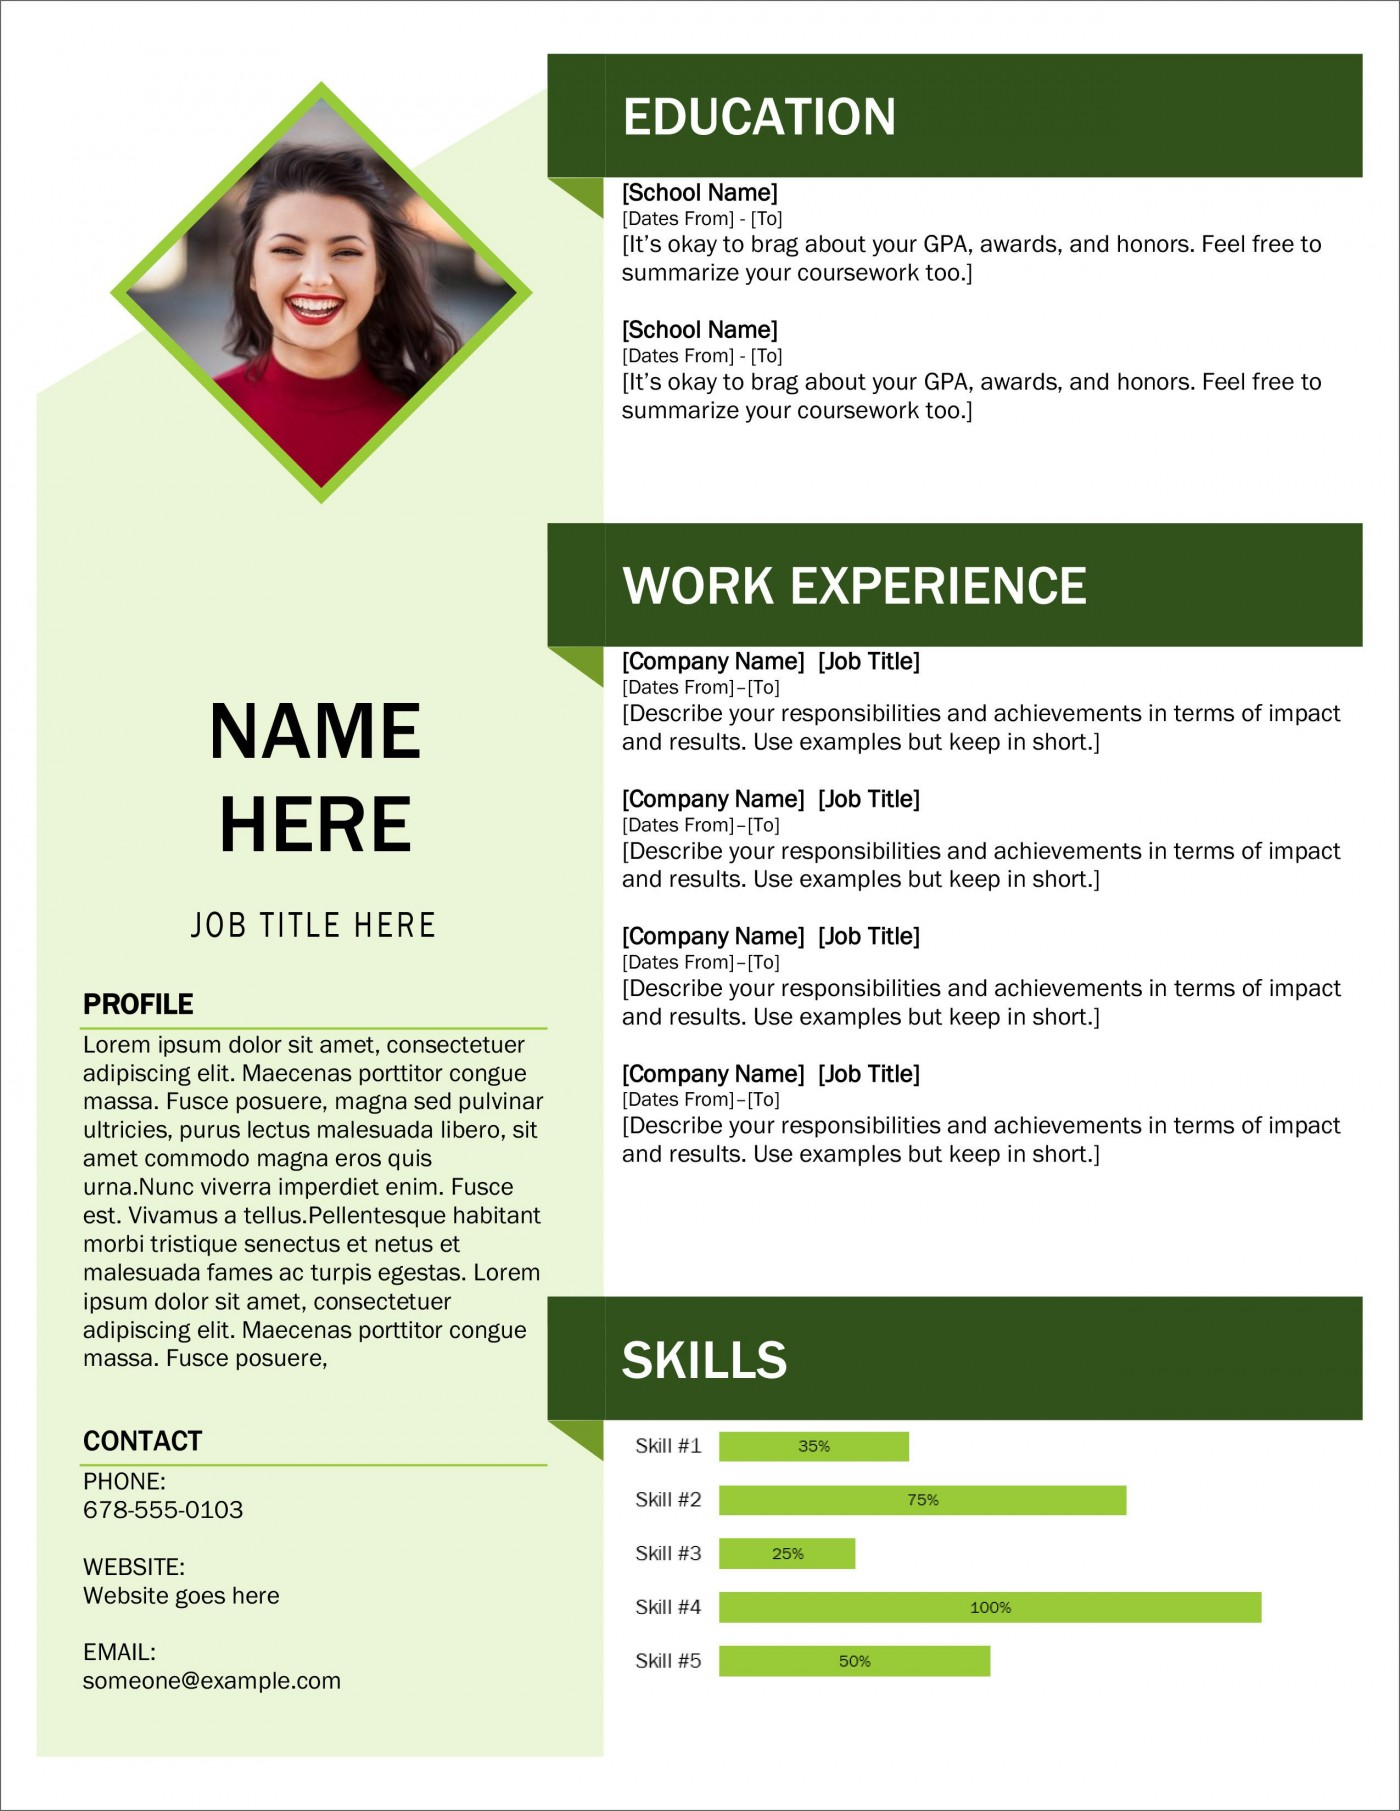 005 Exceptional Download Resume Template Word 2007 High Def 1400